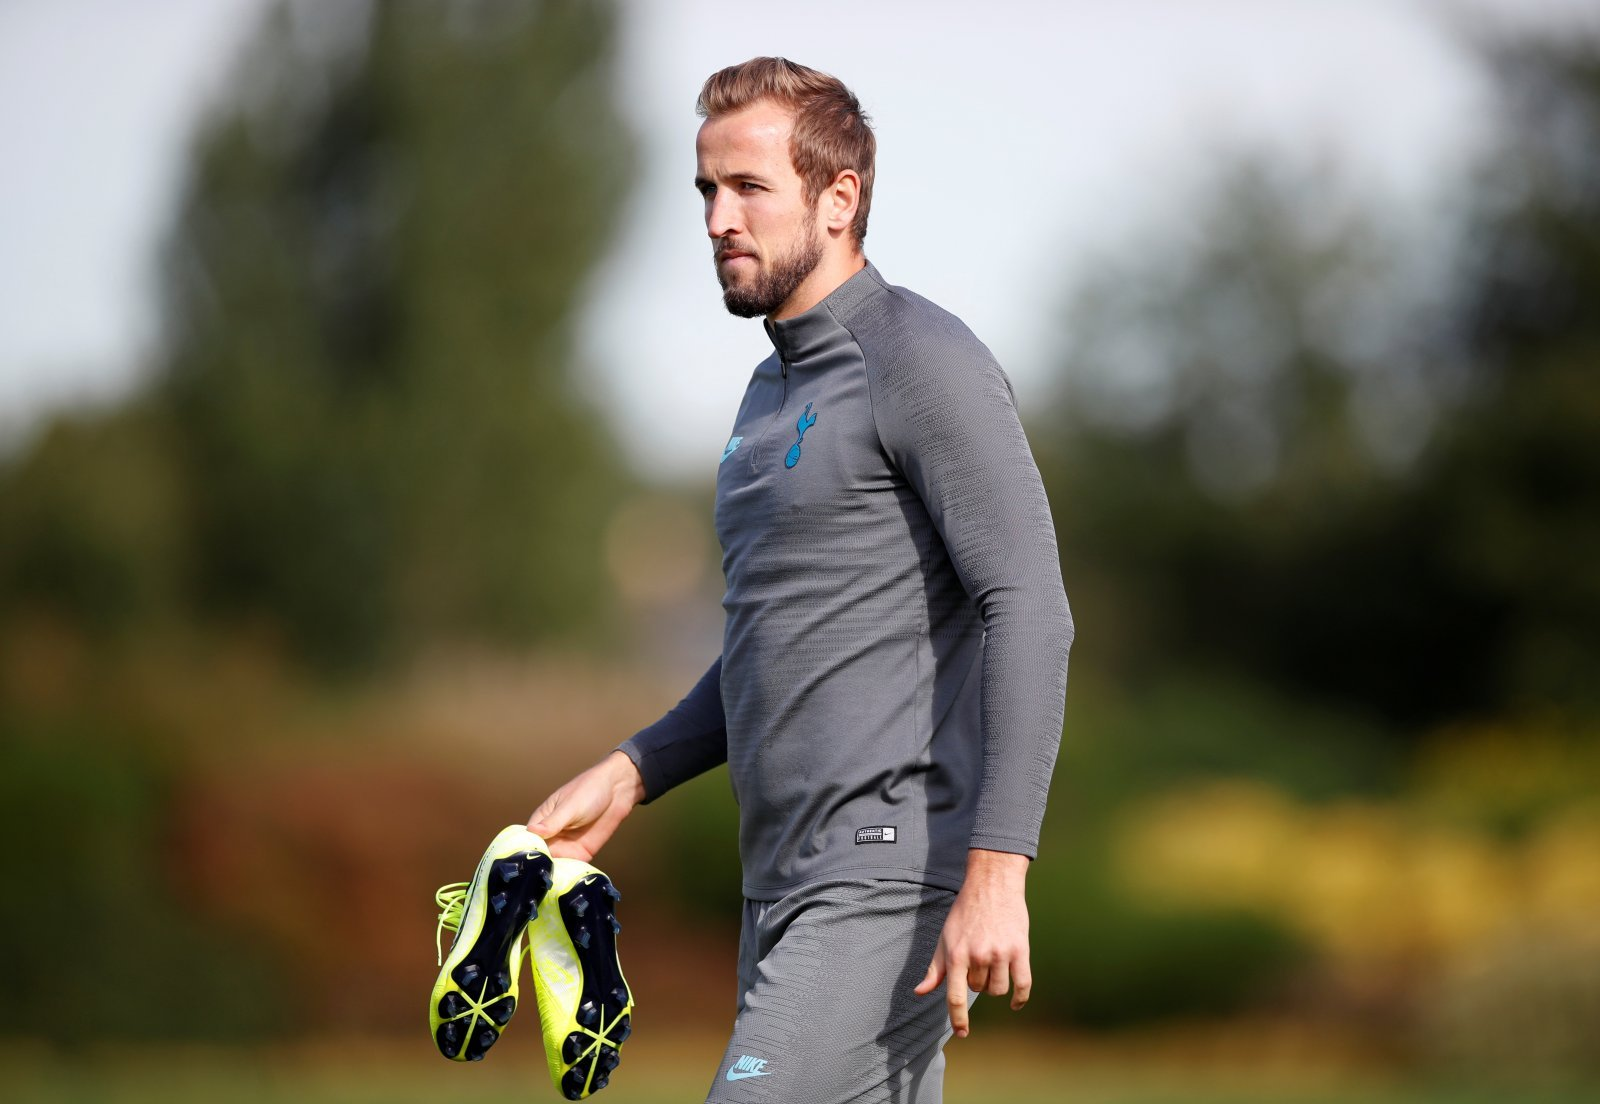 Tottenham Hotspur: 'Frustrated' Kane could request move this summer after poor start